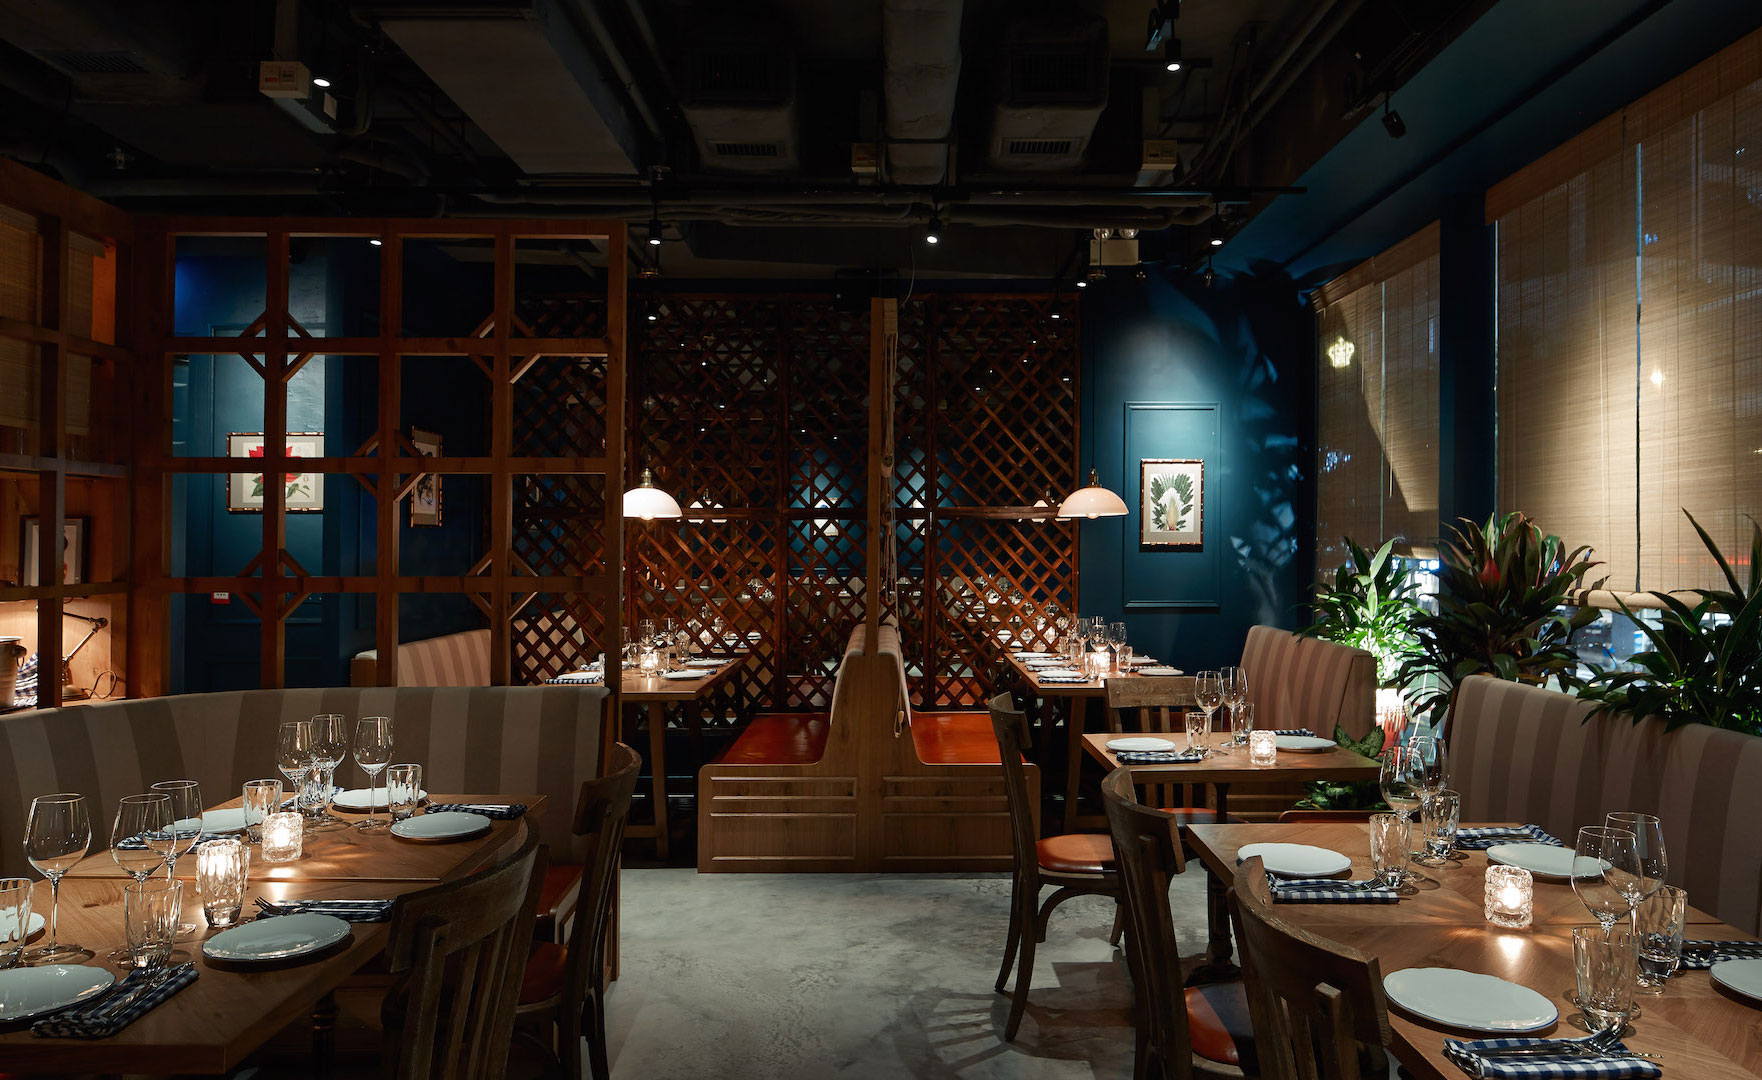 Helm Design The Optimist Restaurant Review - Hong Kong, China | Wallpaper*